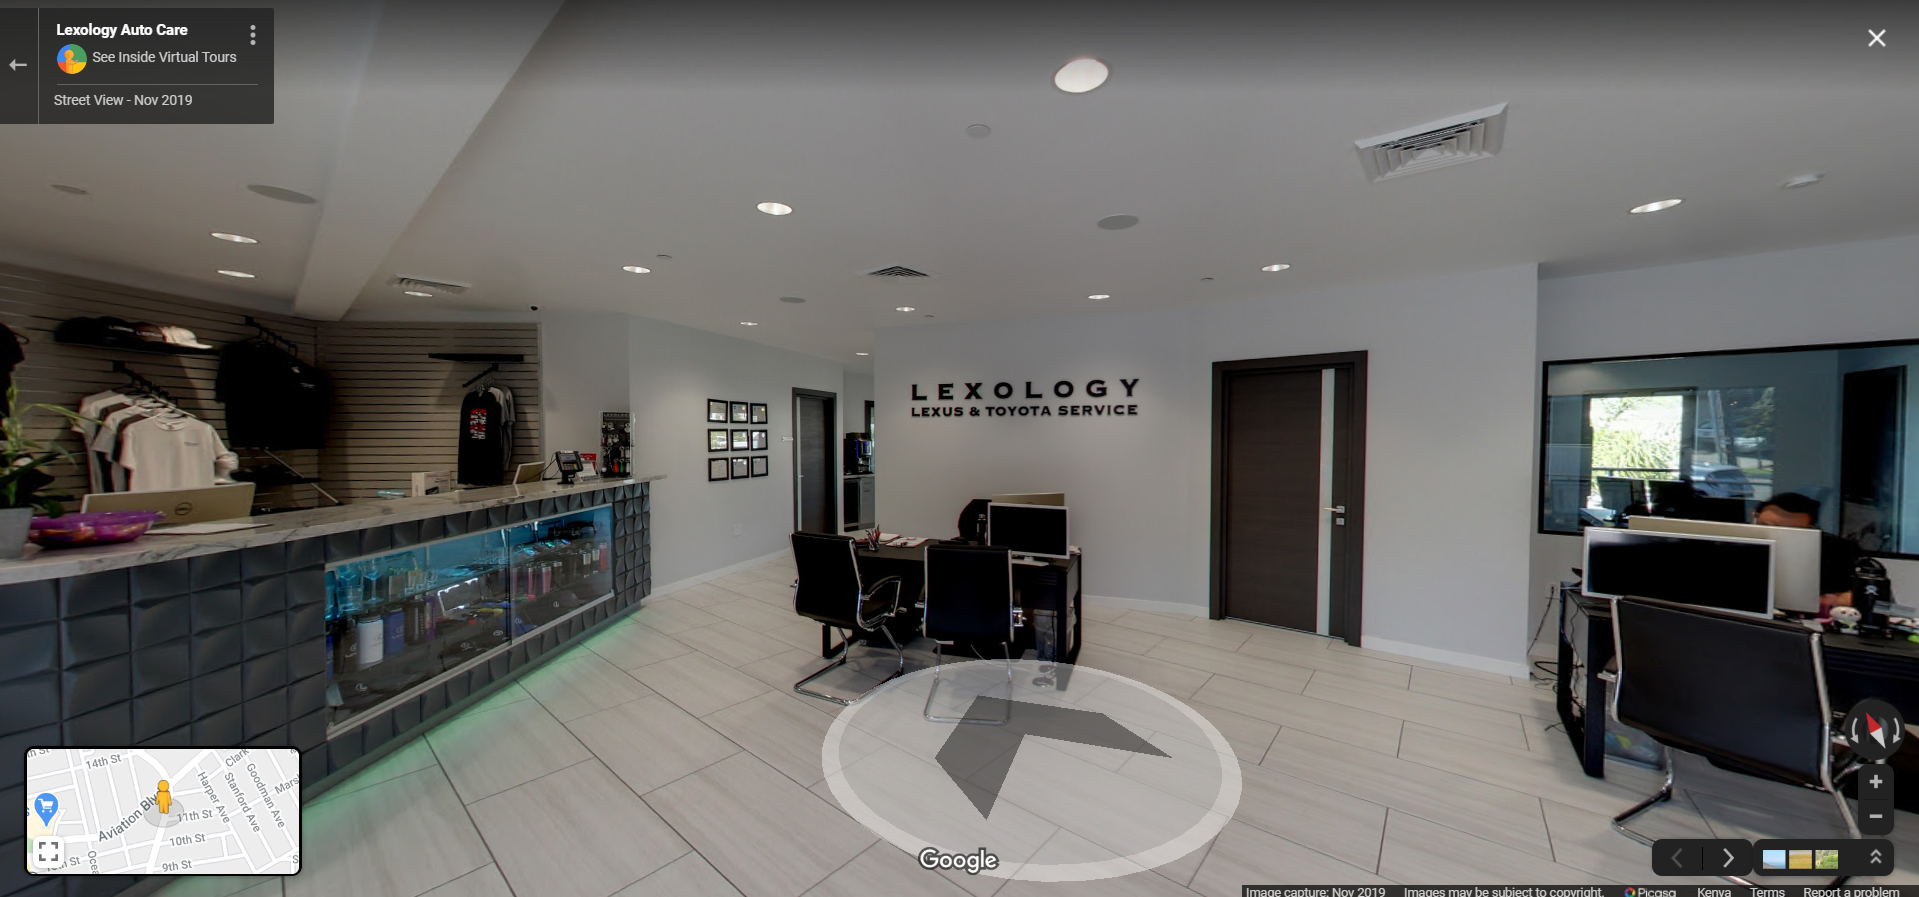 Lexology Auto Care - Hermosa Beach